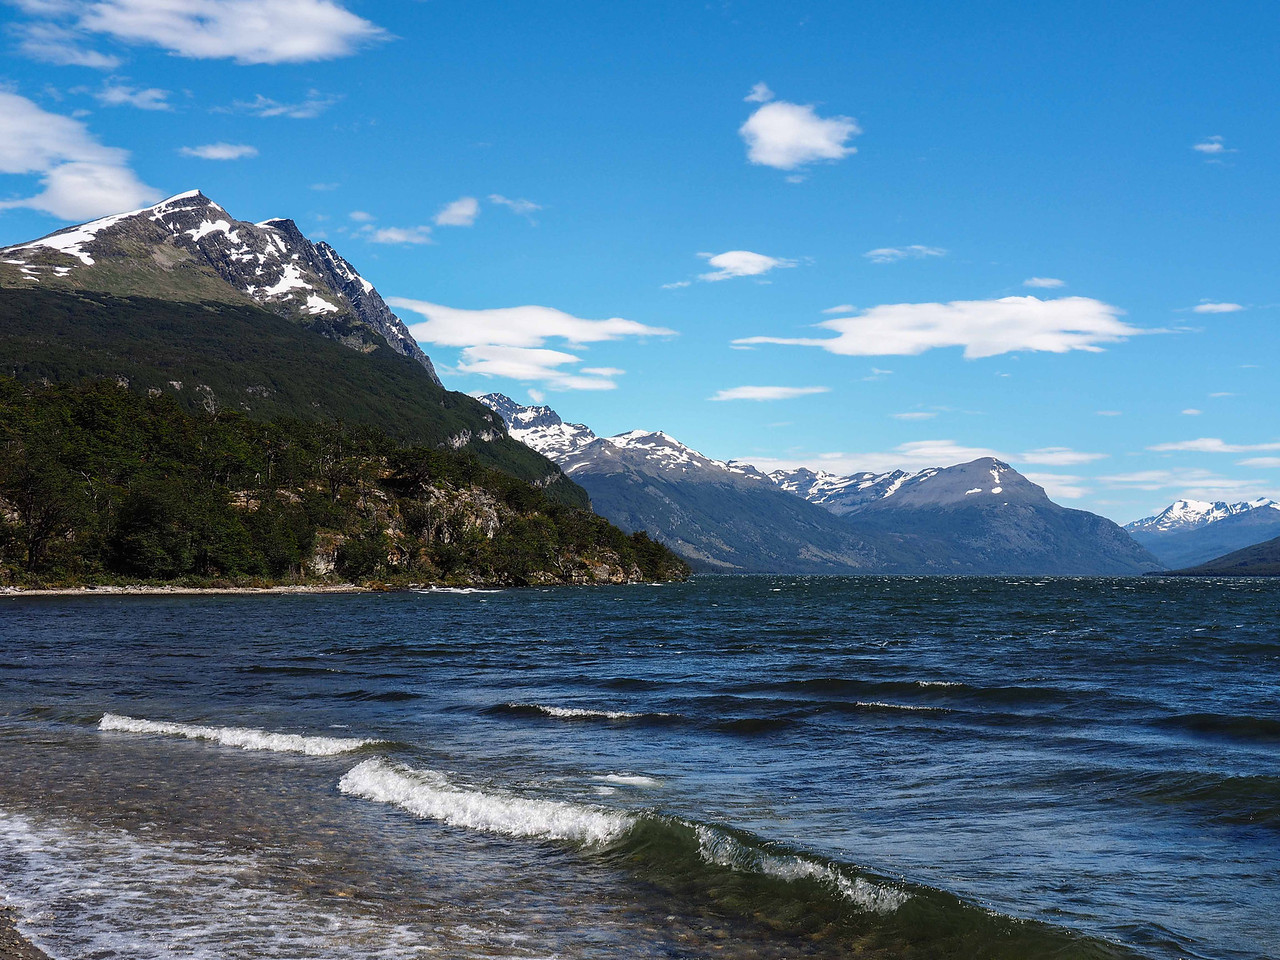 View from the shore of Lago Roca (Lake Roca) , Tierra del Fuego National Park